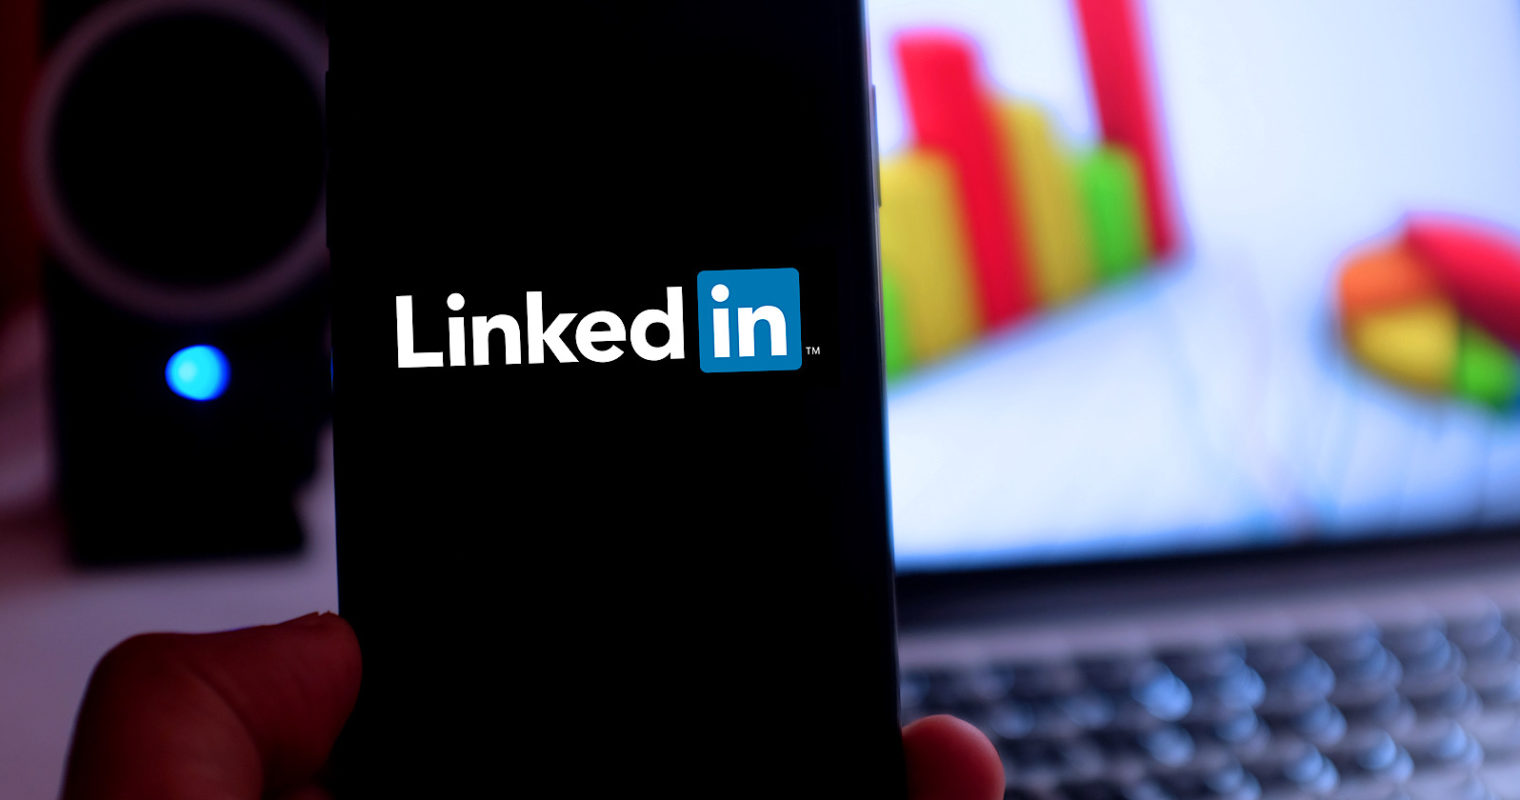 LinkedIn Now Factors 'Dwell Time' Into its Algorithm